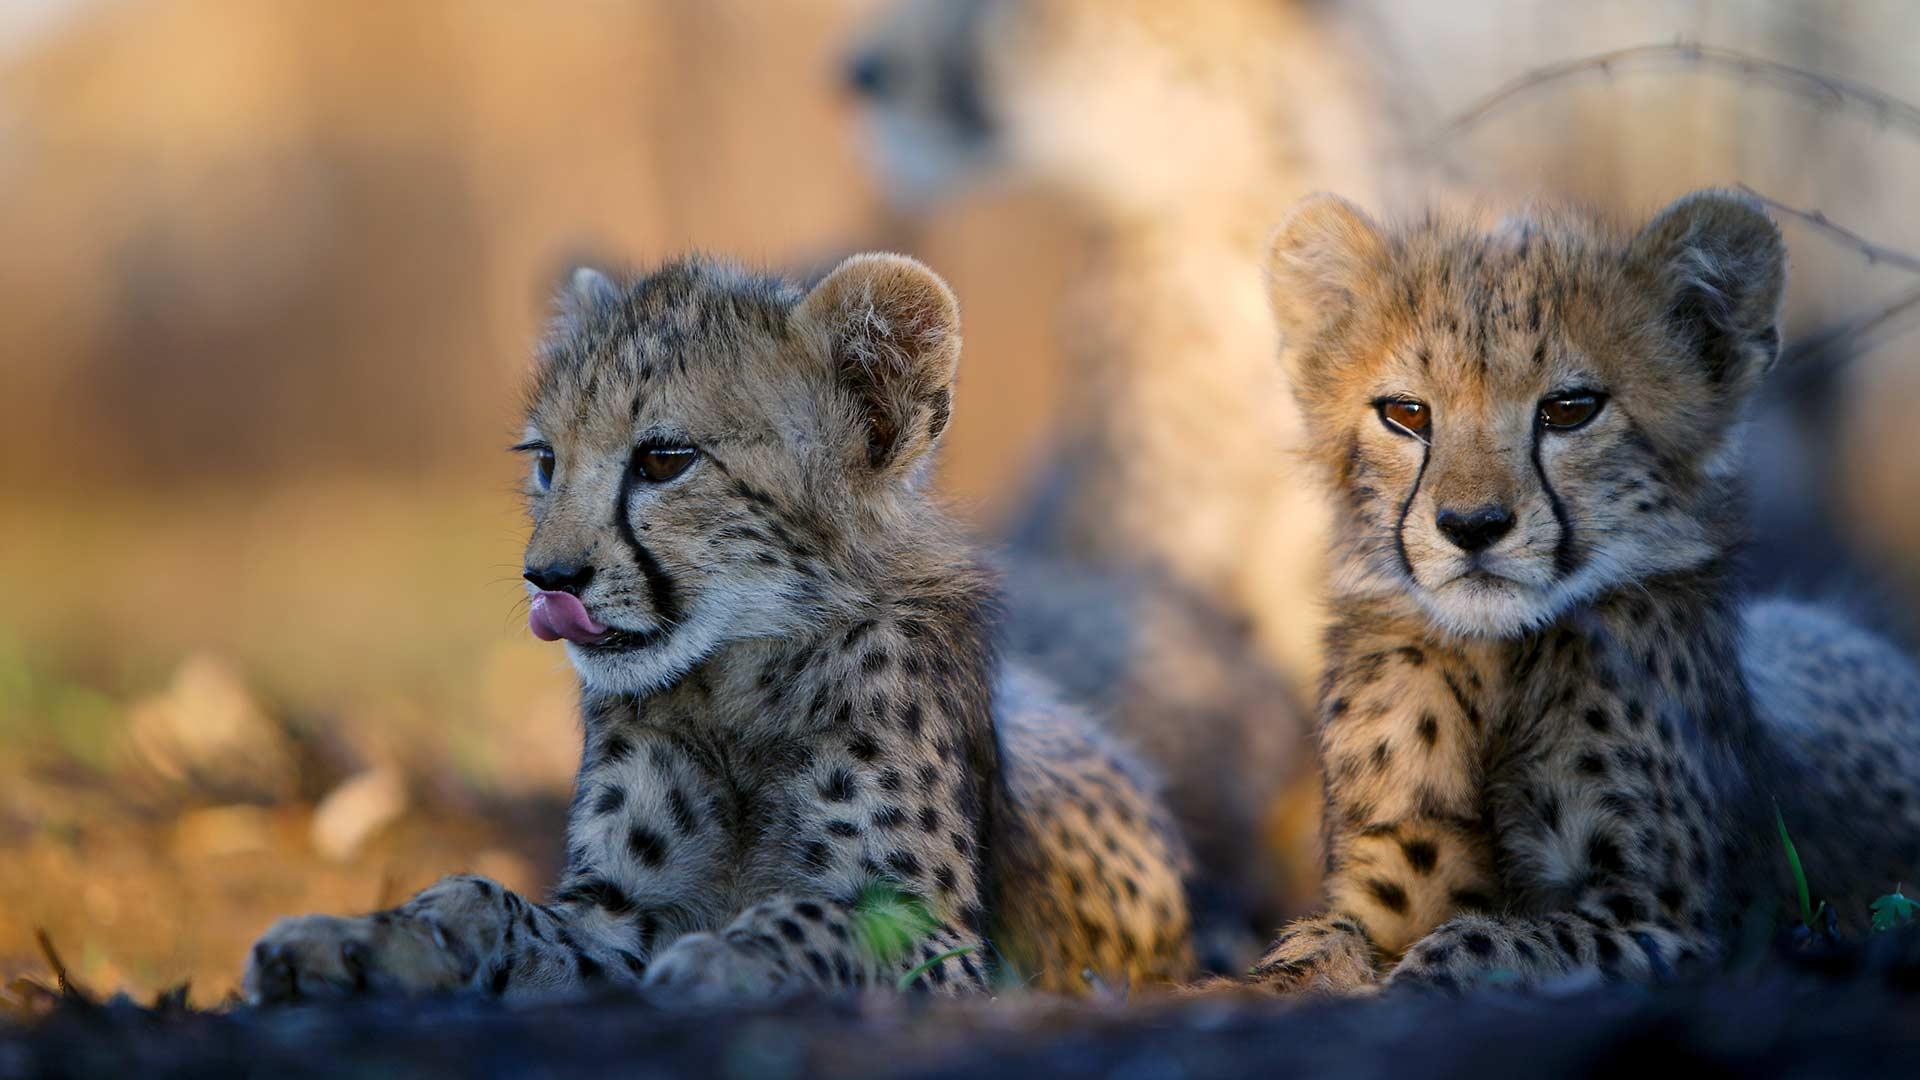 Two young cheetah cubs lie in the shade while their mother rests in the background, Malilangwe Wildlife Reserve, Zimbabwe.